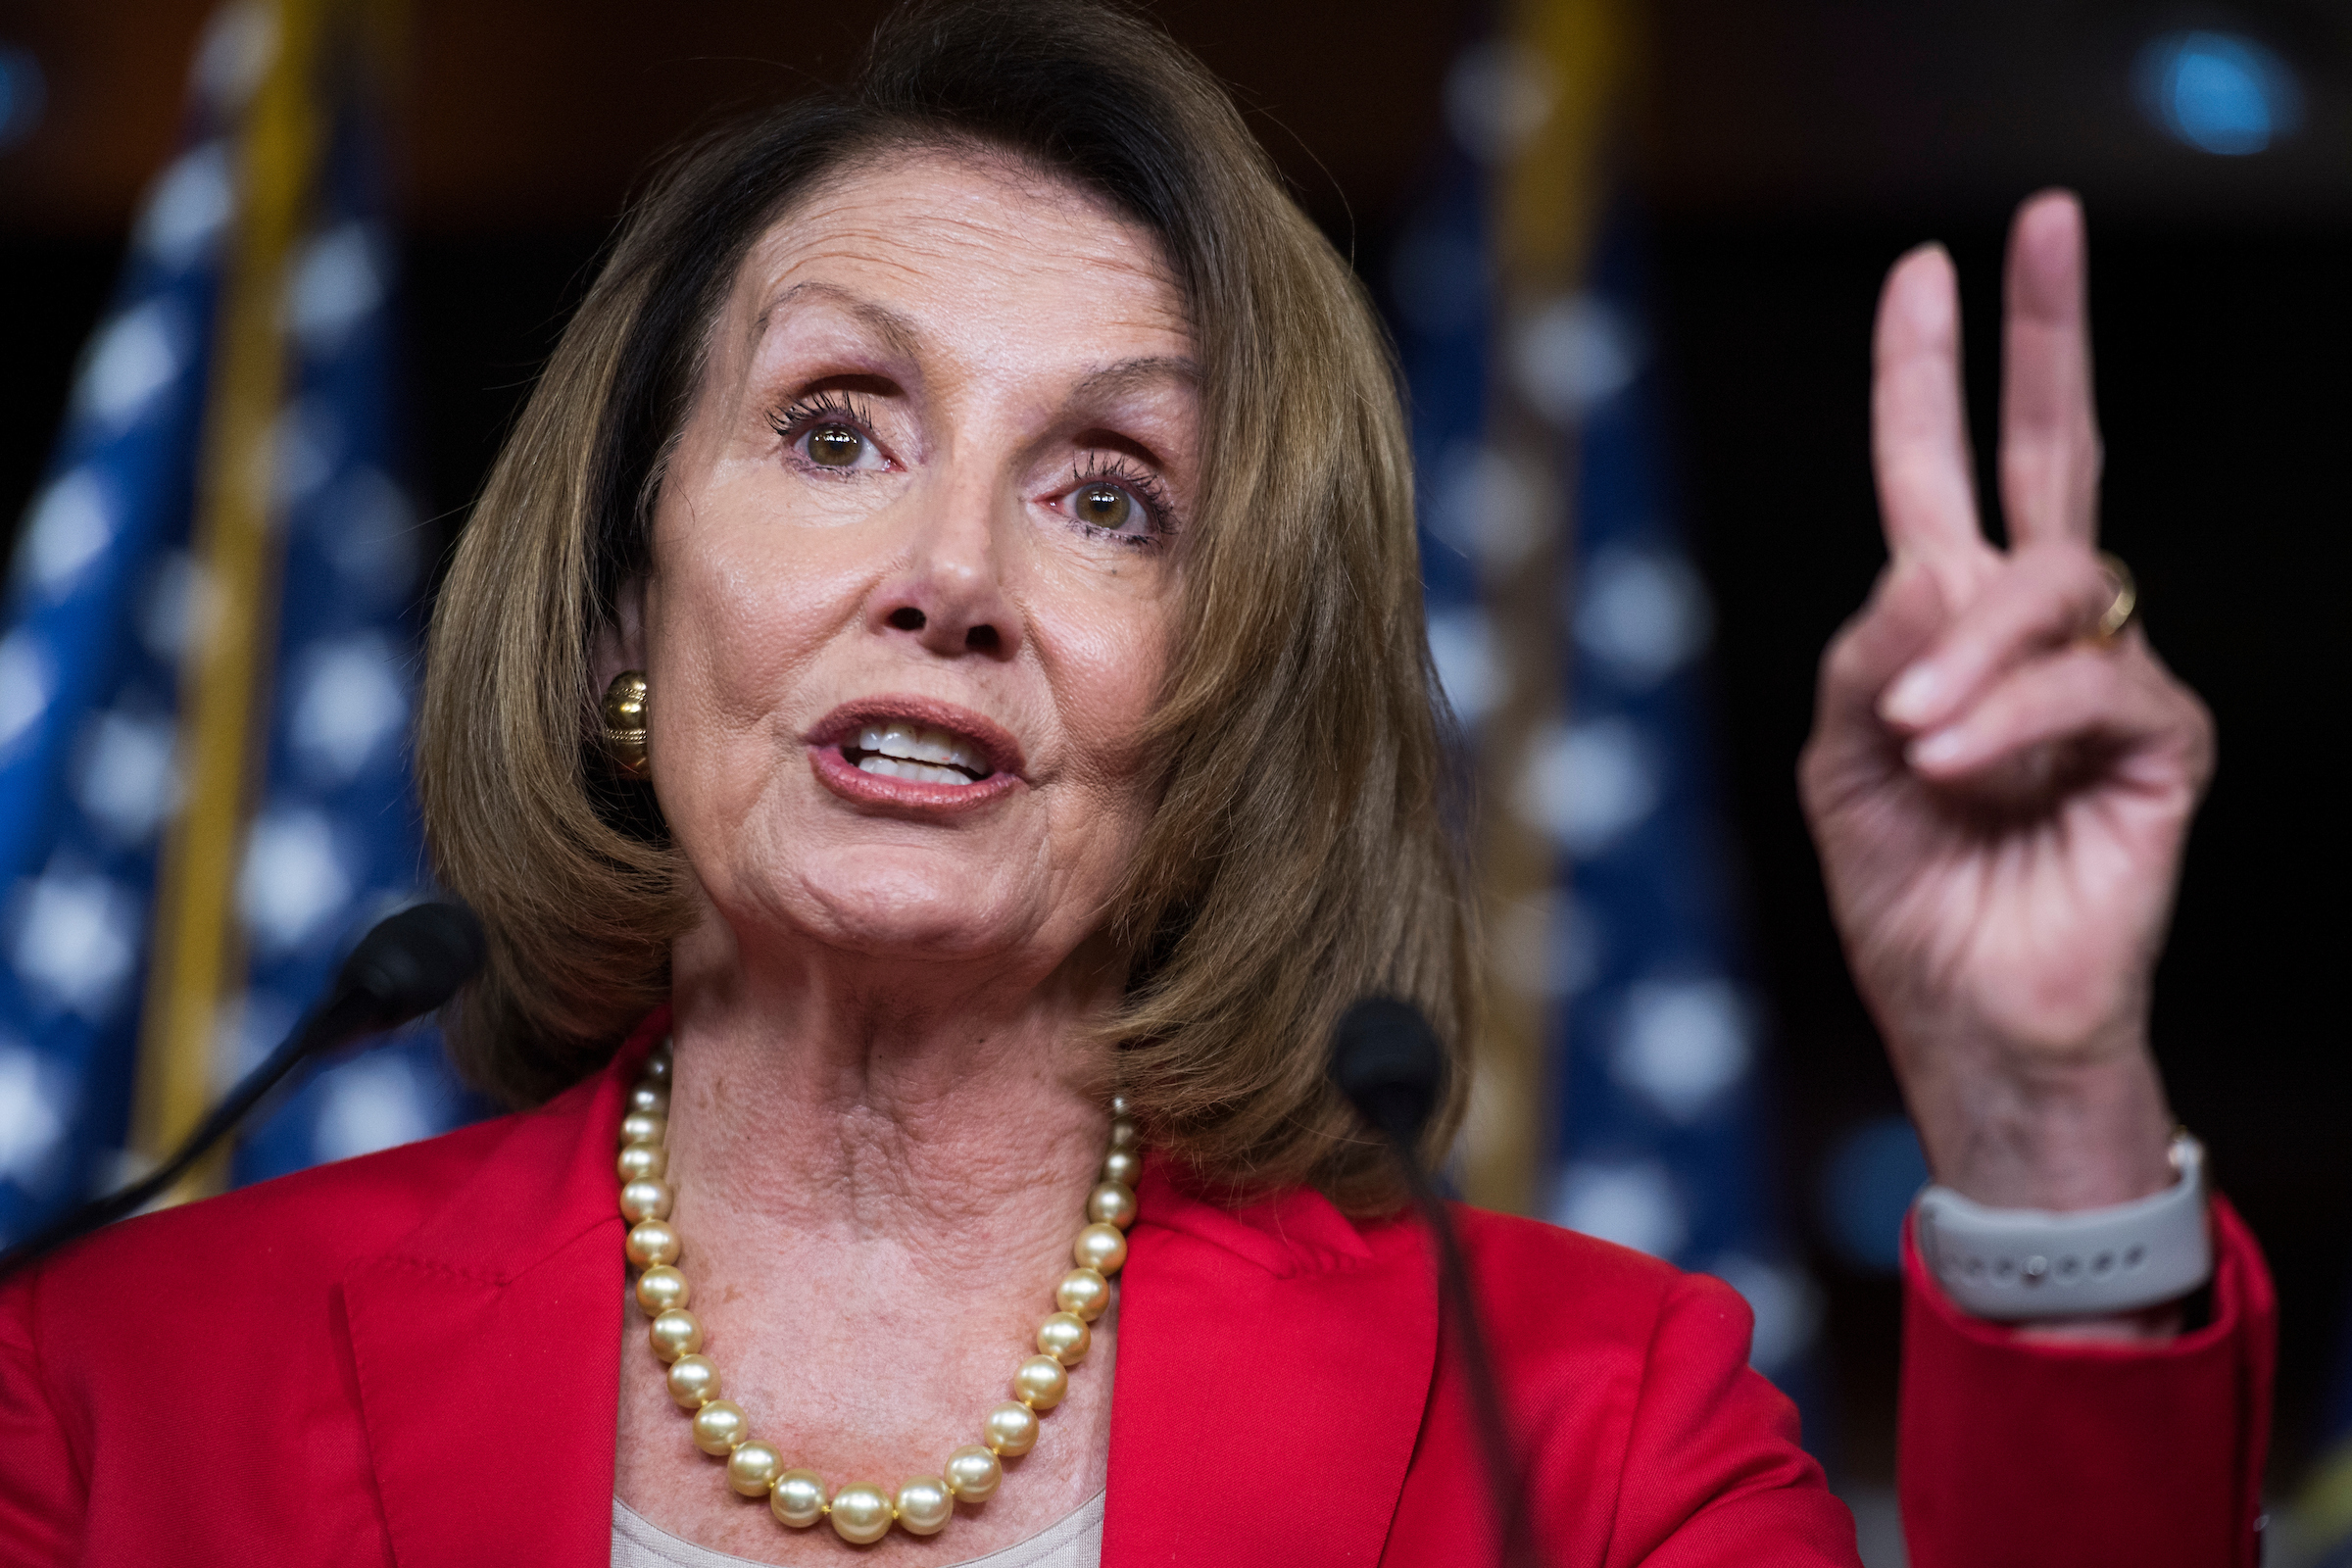 is nancy pelosi up for reelection in 2020